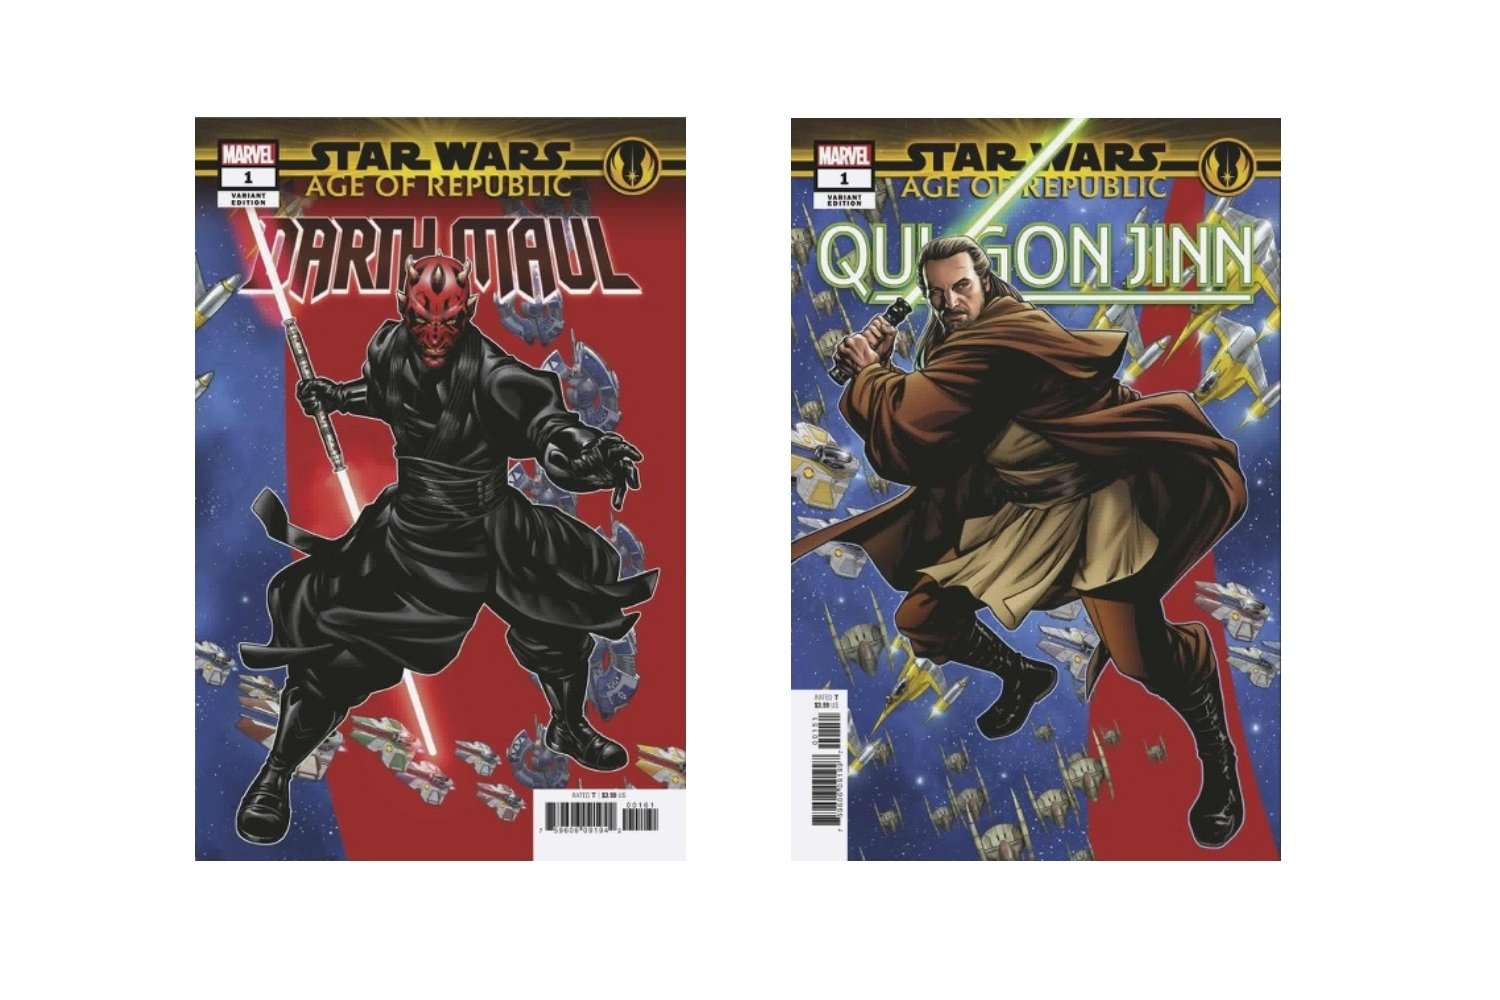 Age of Republic variant covers